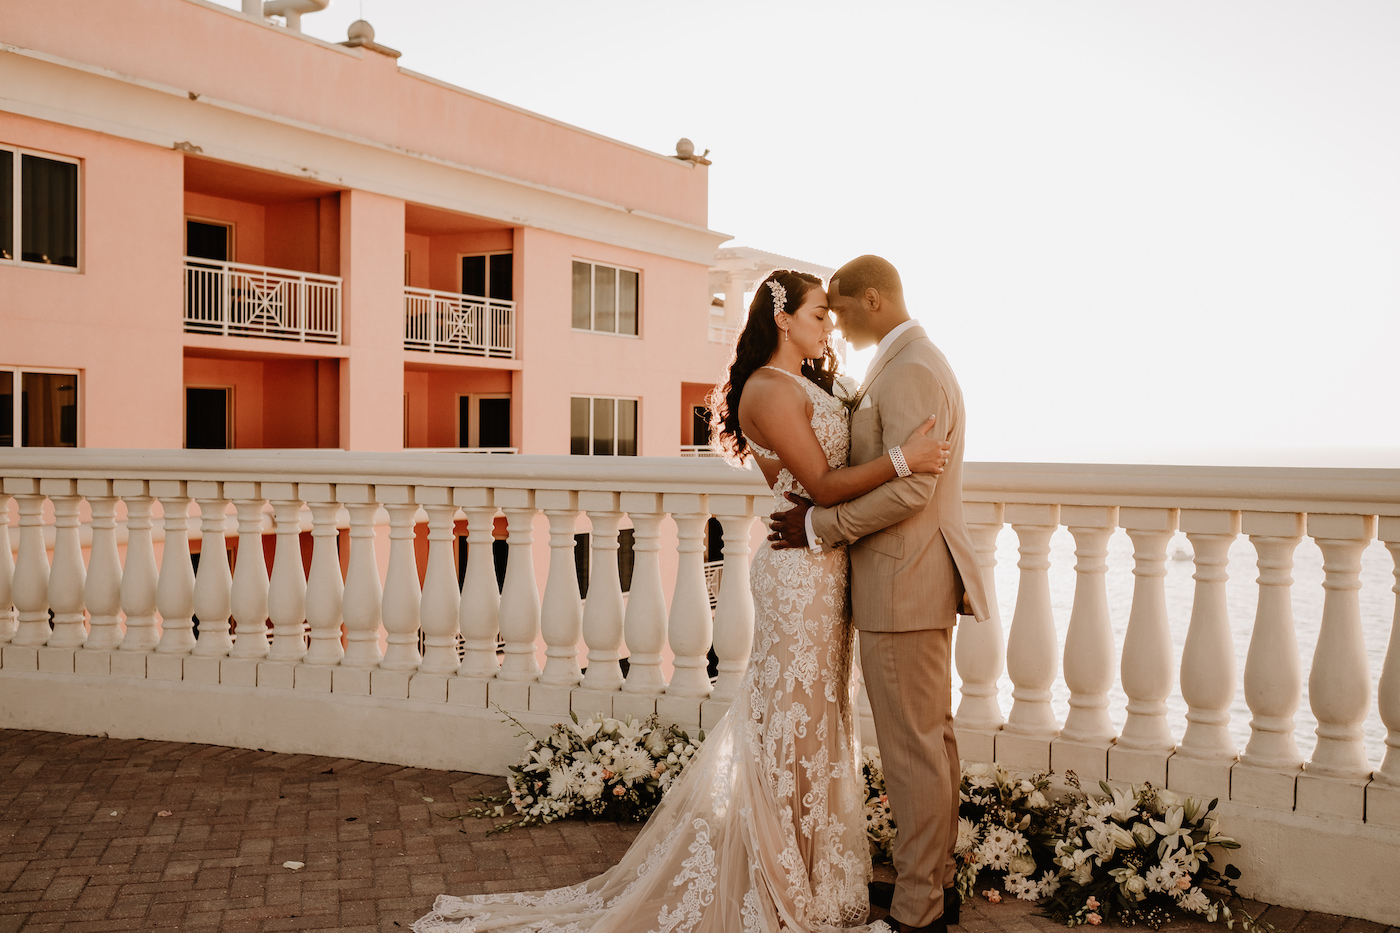 Bride and Groom Portrait at Clearwater Wedding Venue Hyatt Regency Clearwater Beach Hotel   Outdoor Rooftop Waterfront Wedding   Champagne Lace Sheath Illusion Neck Bridal Gown   Groom Khaki Tan Suit